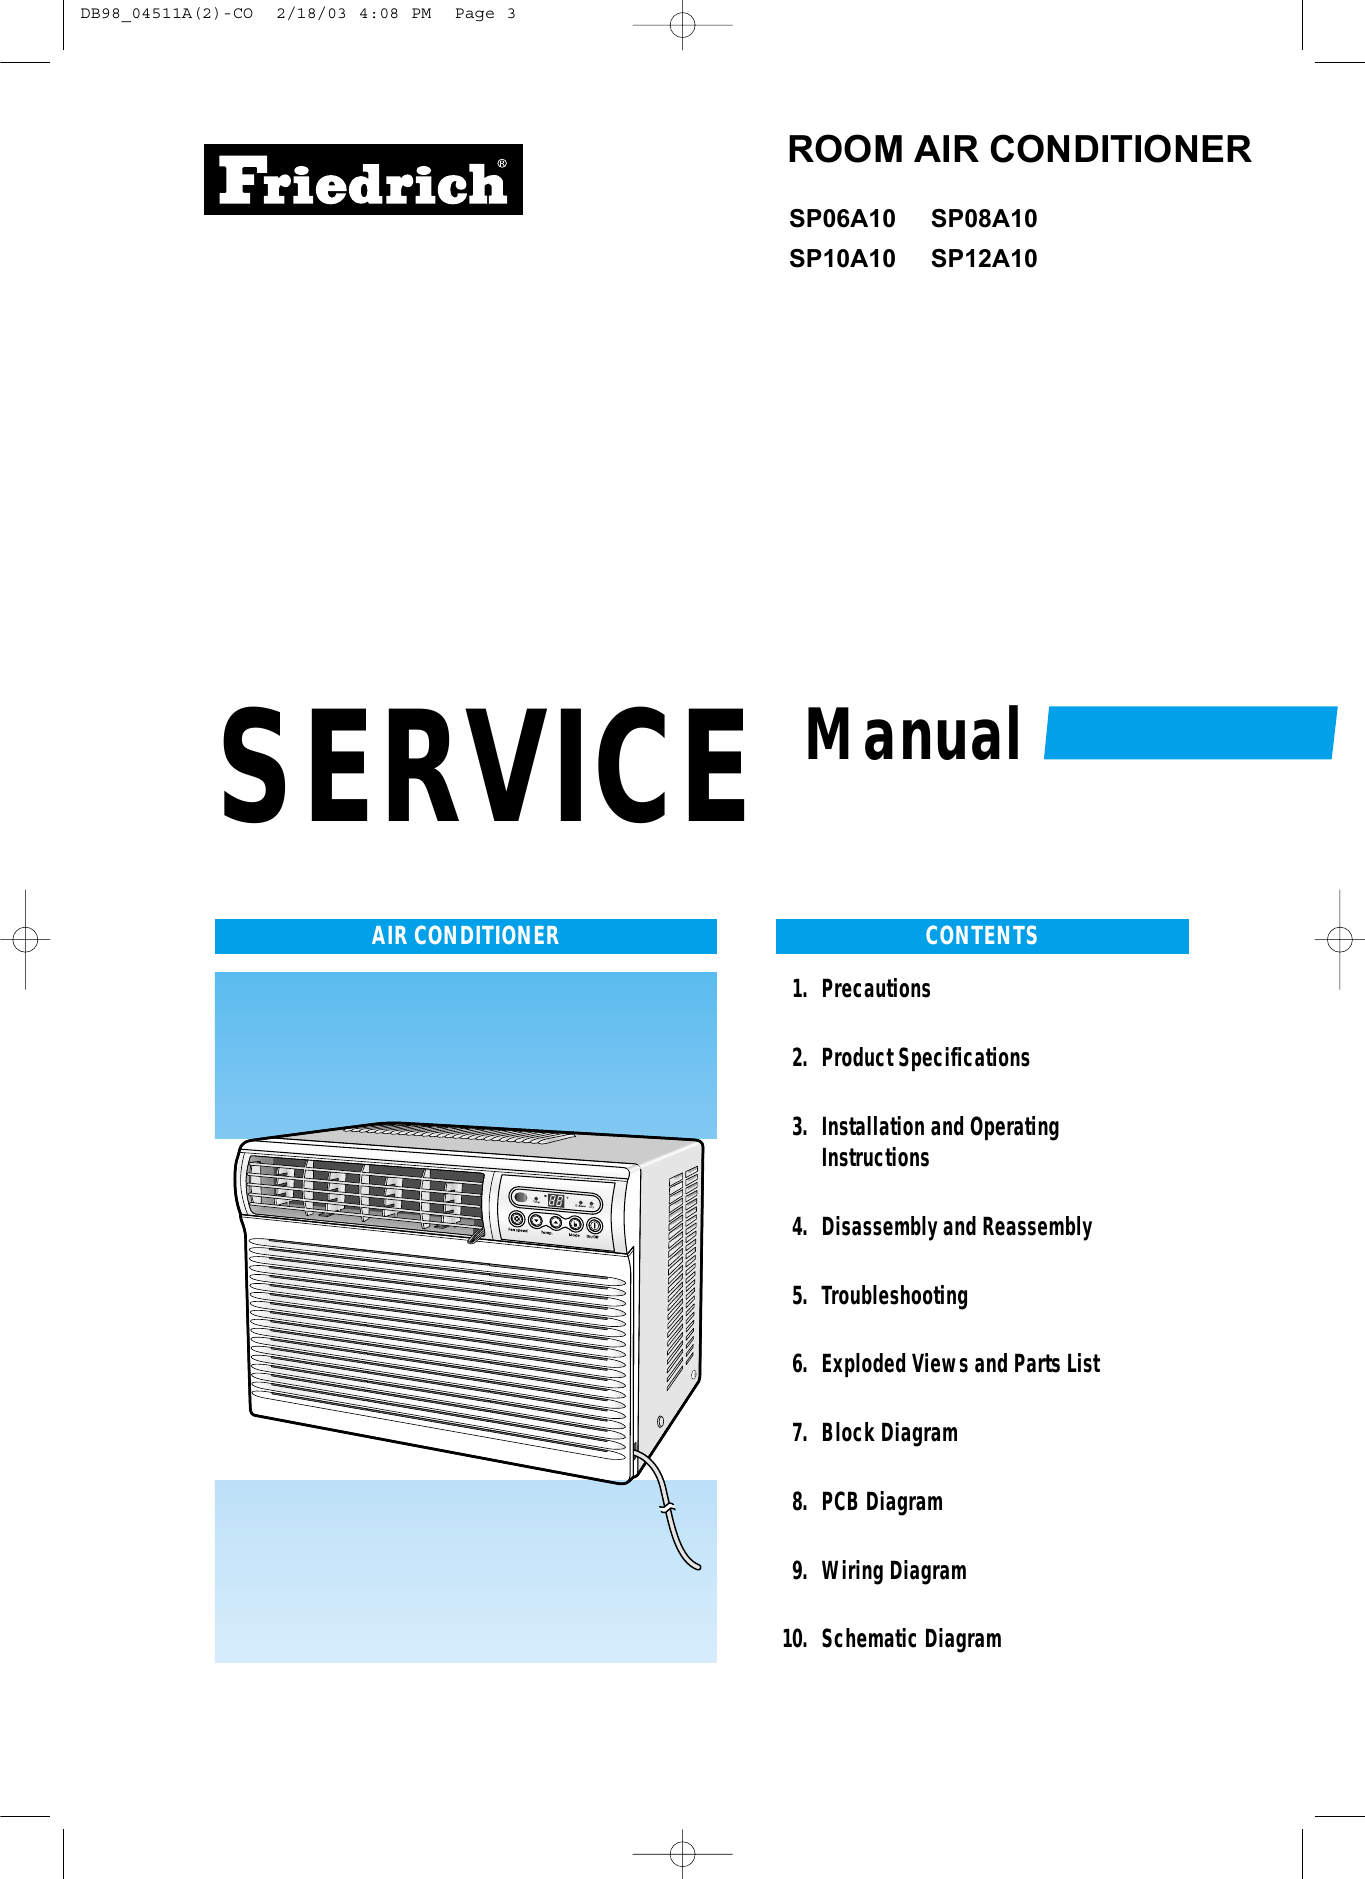 Friedrich Air Conditioner Sp06a10 Users Manual Conditioners Wiring Diagram